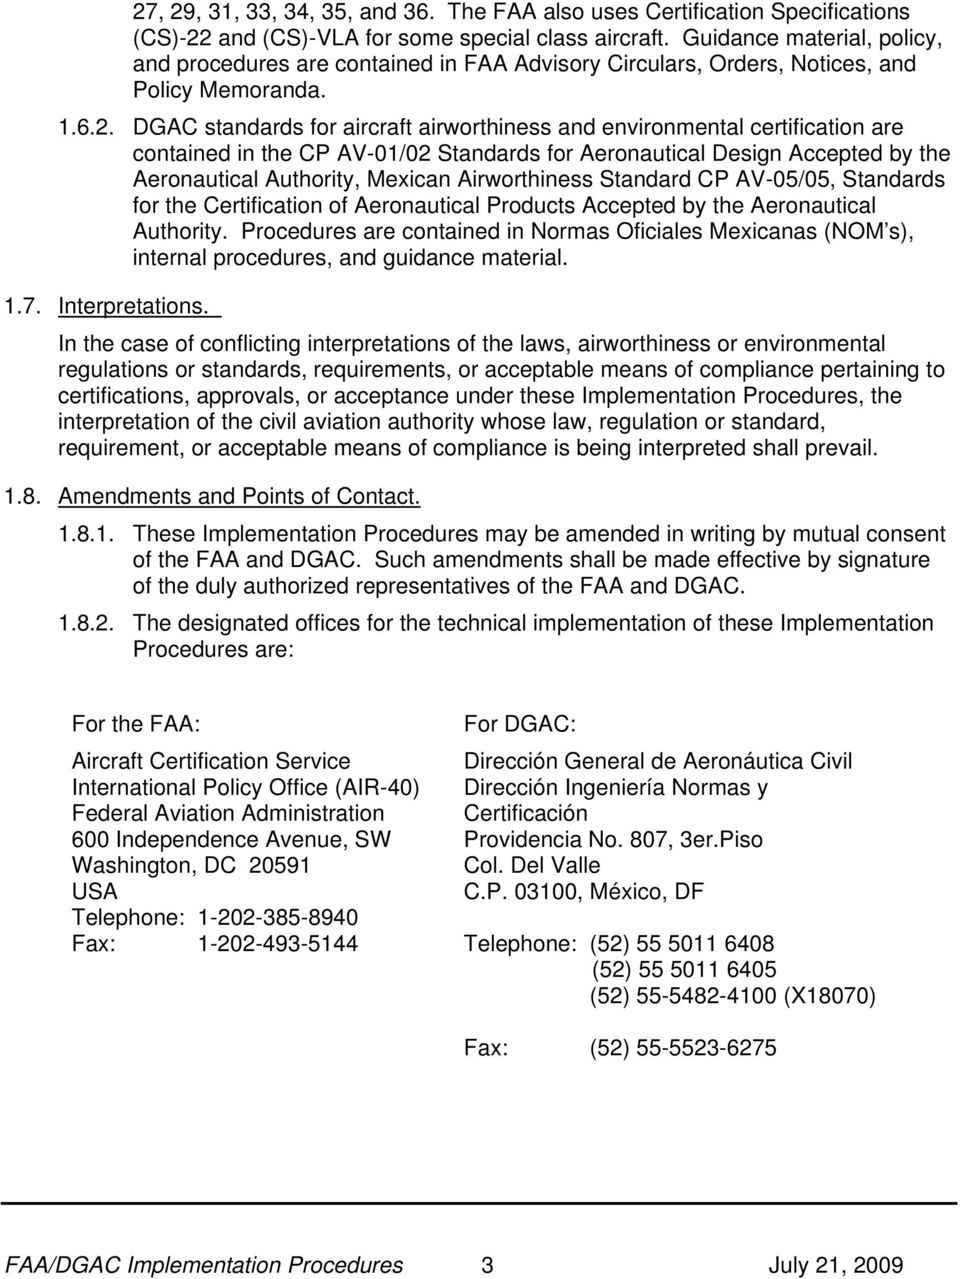 DGAC standards for aircraft airworthiness and environmental certification are contained in the CP AV-01/02 Standards for Aeronautical Design Accepted by the Aeronautical Authority, Mexican